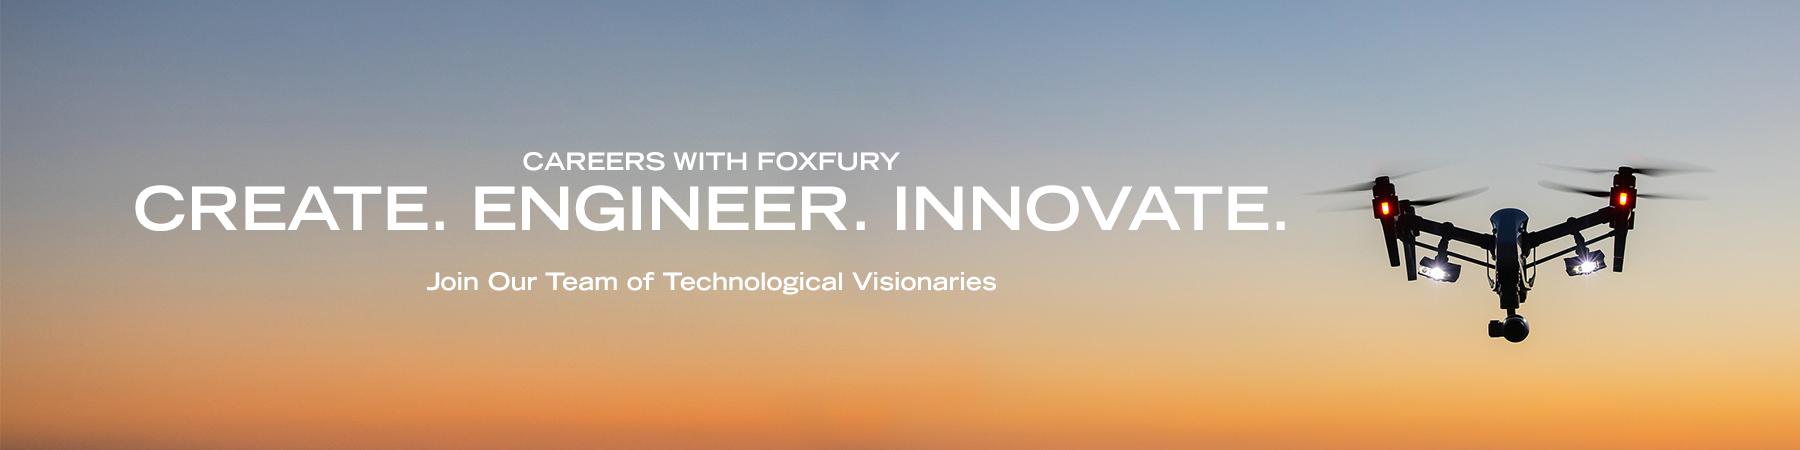 Come Work with the FoxFury Family